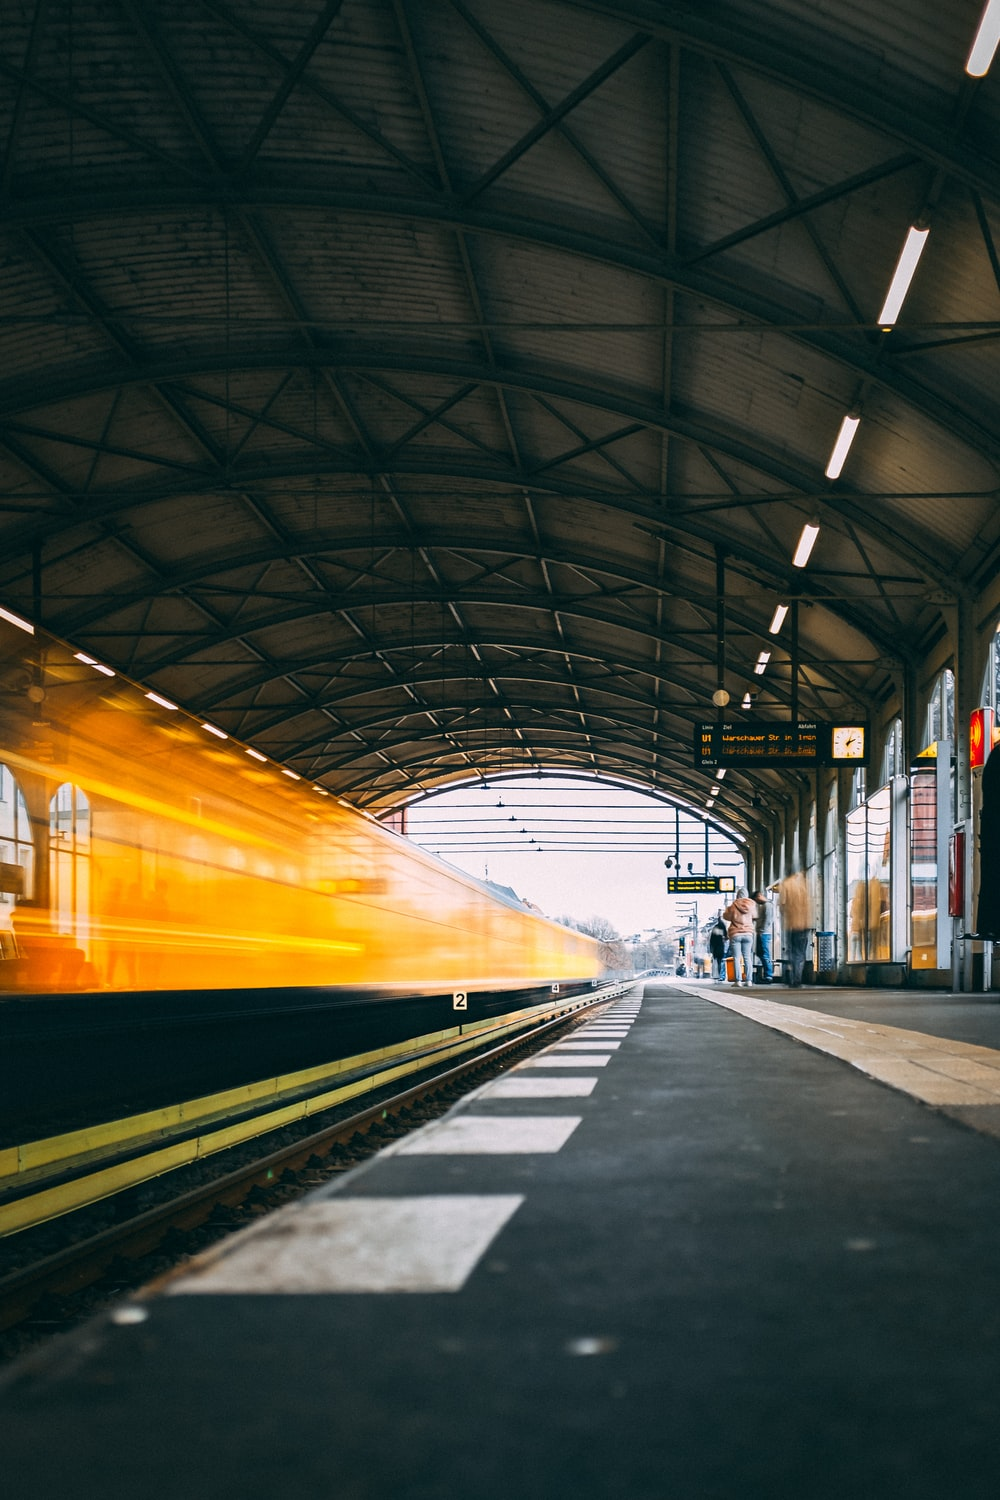 train passing by on train station at daytime